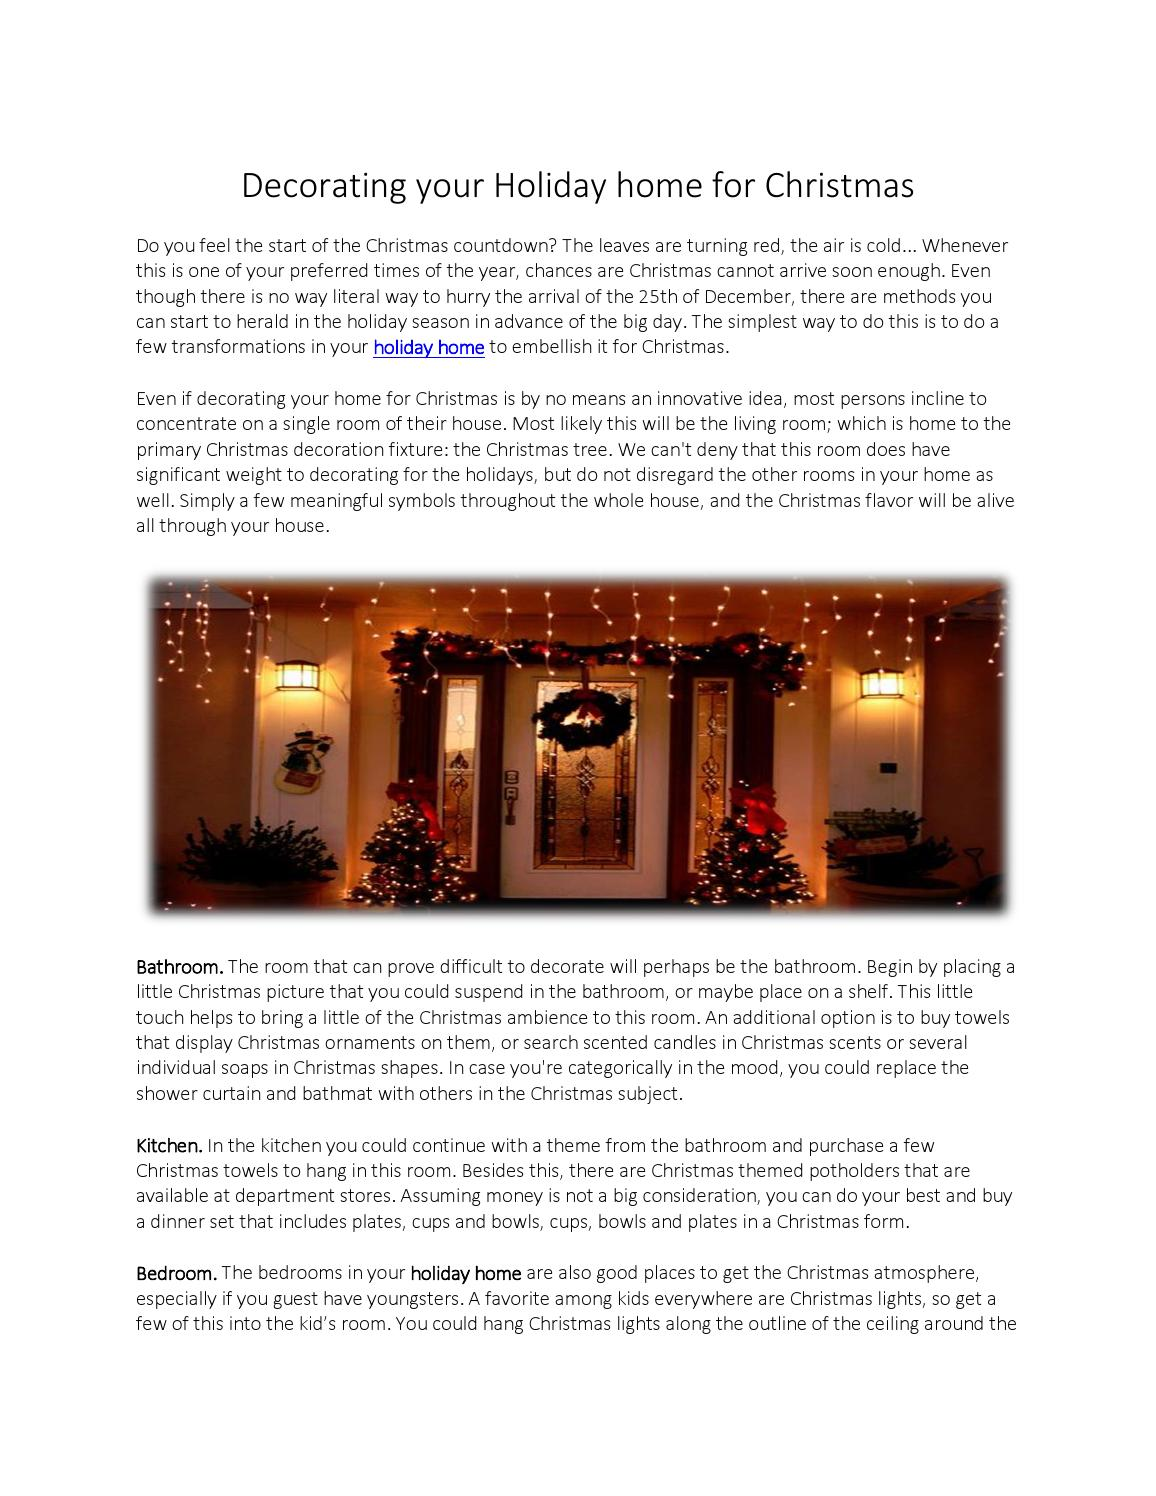 Decorating your holiday home for christmas by karma lewis - issuu